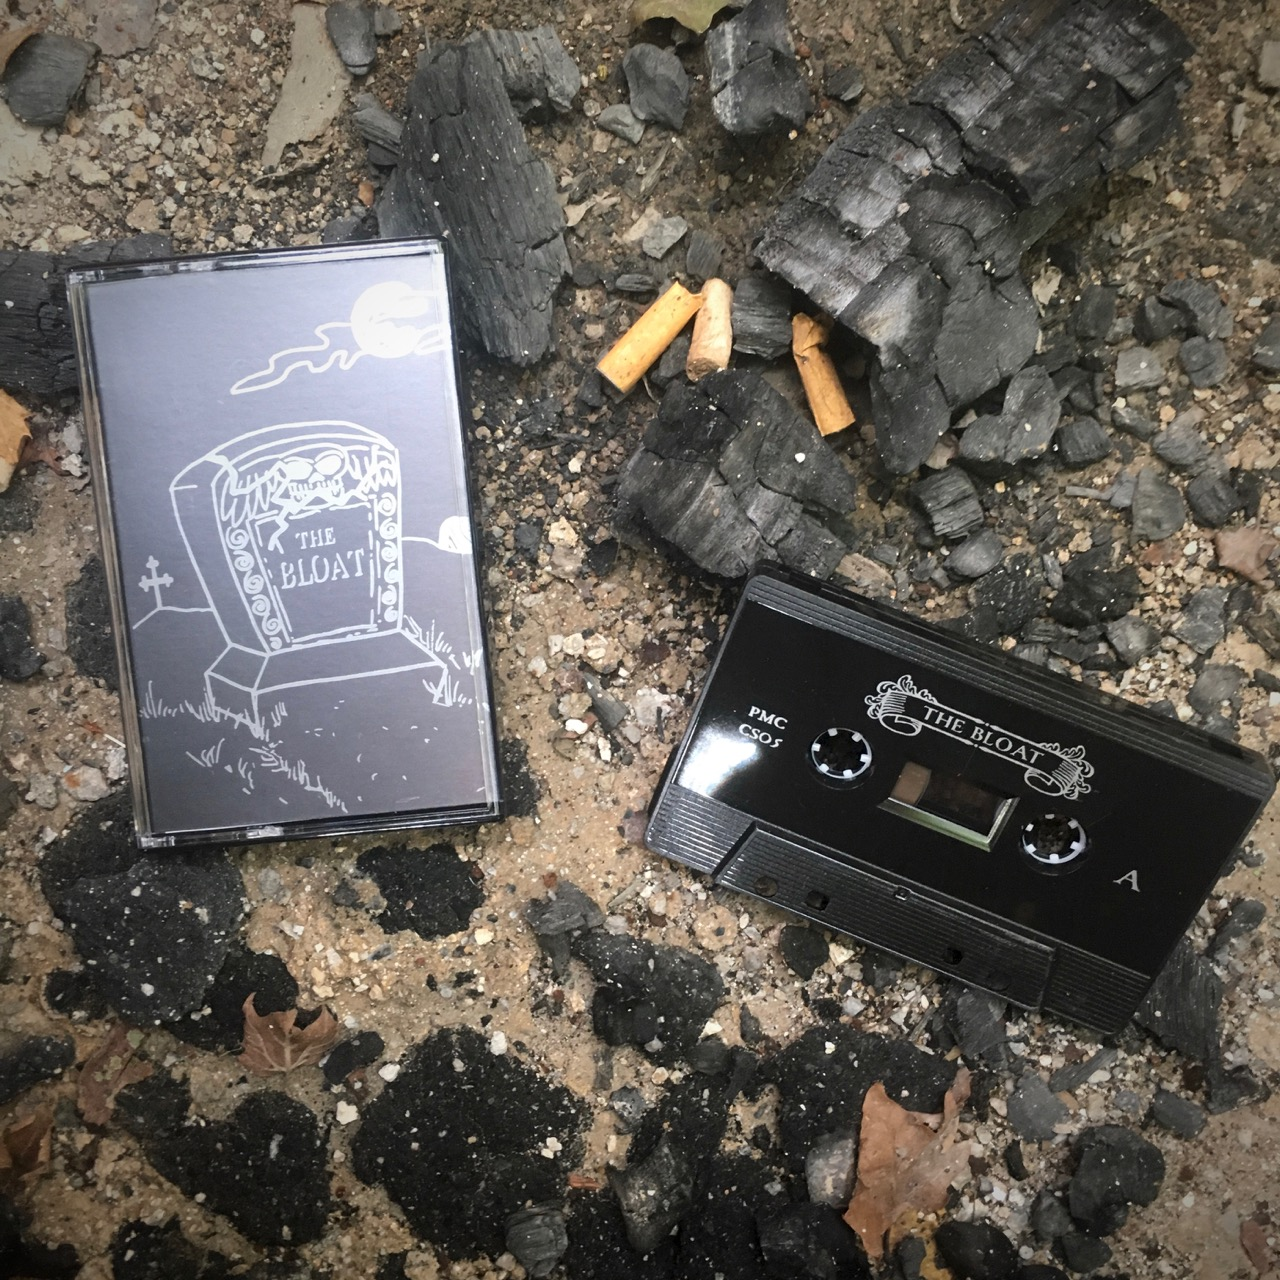 THE BLOAT - Sallow, dissentient rock music recorded with pills in a castle. The Bloat does not care, and they don't like anything. They don't even like each other. They barely made it through this recording session. They have been in hiding since this tape was released. Listen and buy HERE